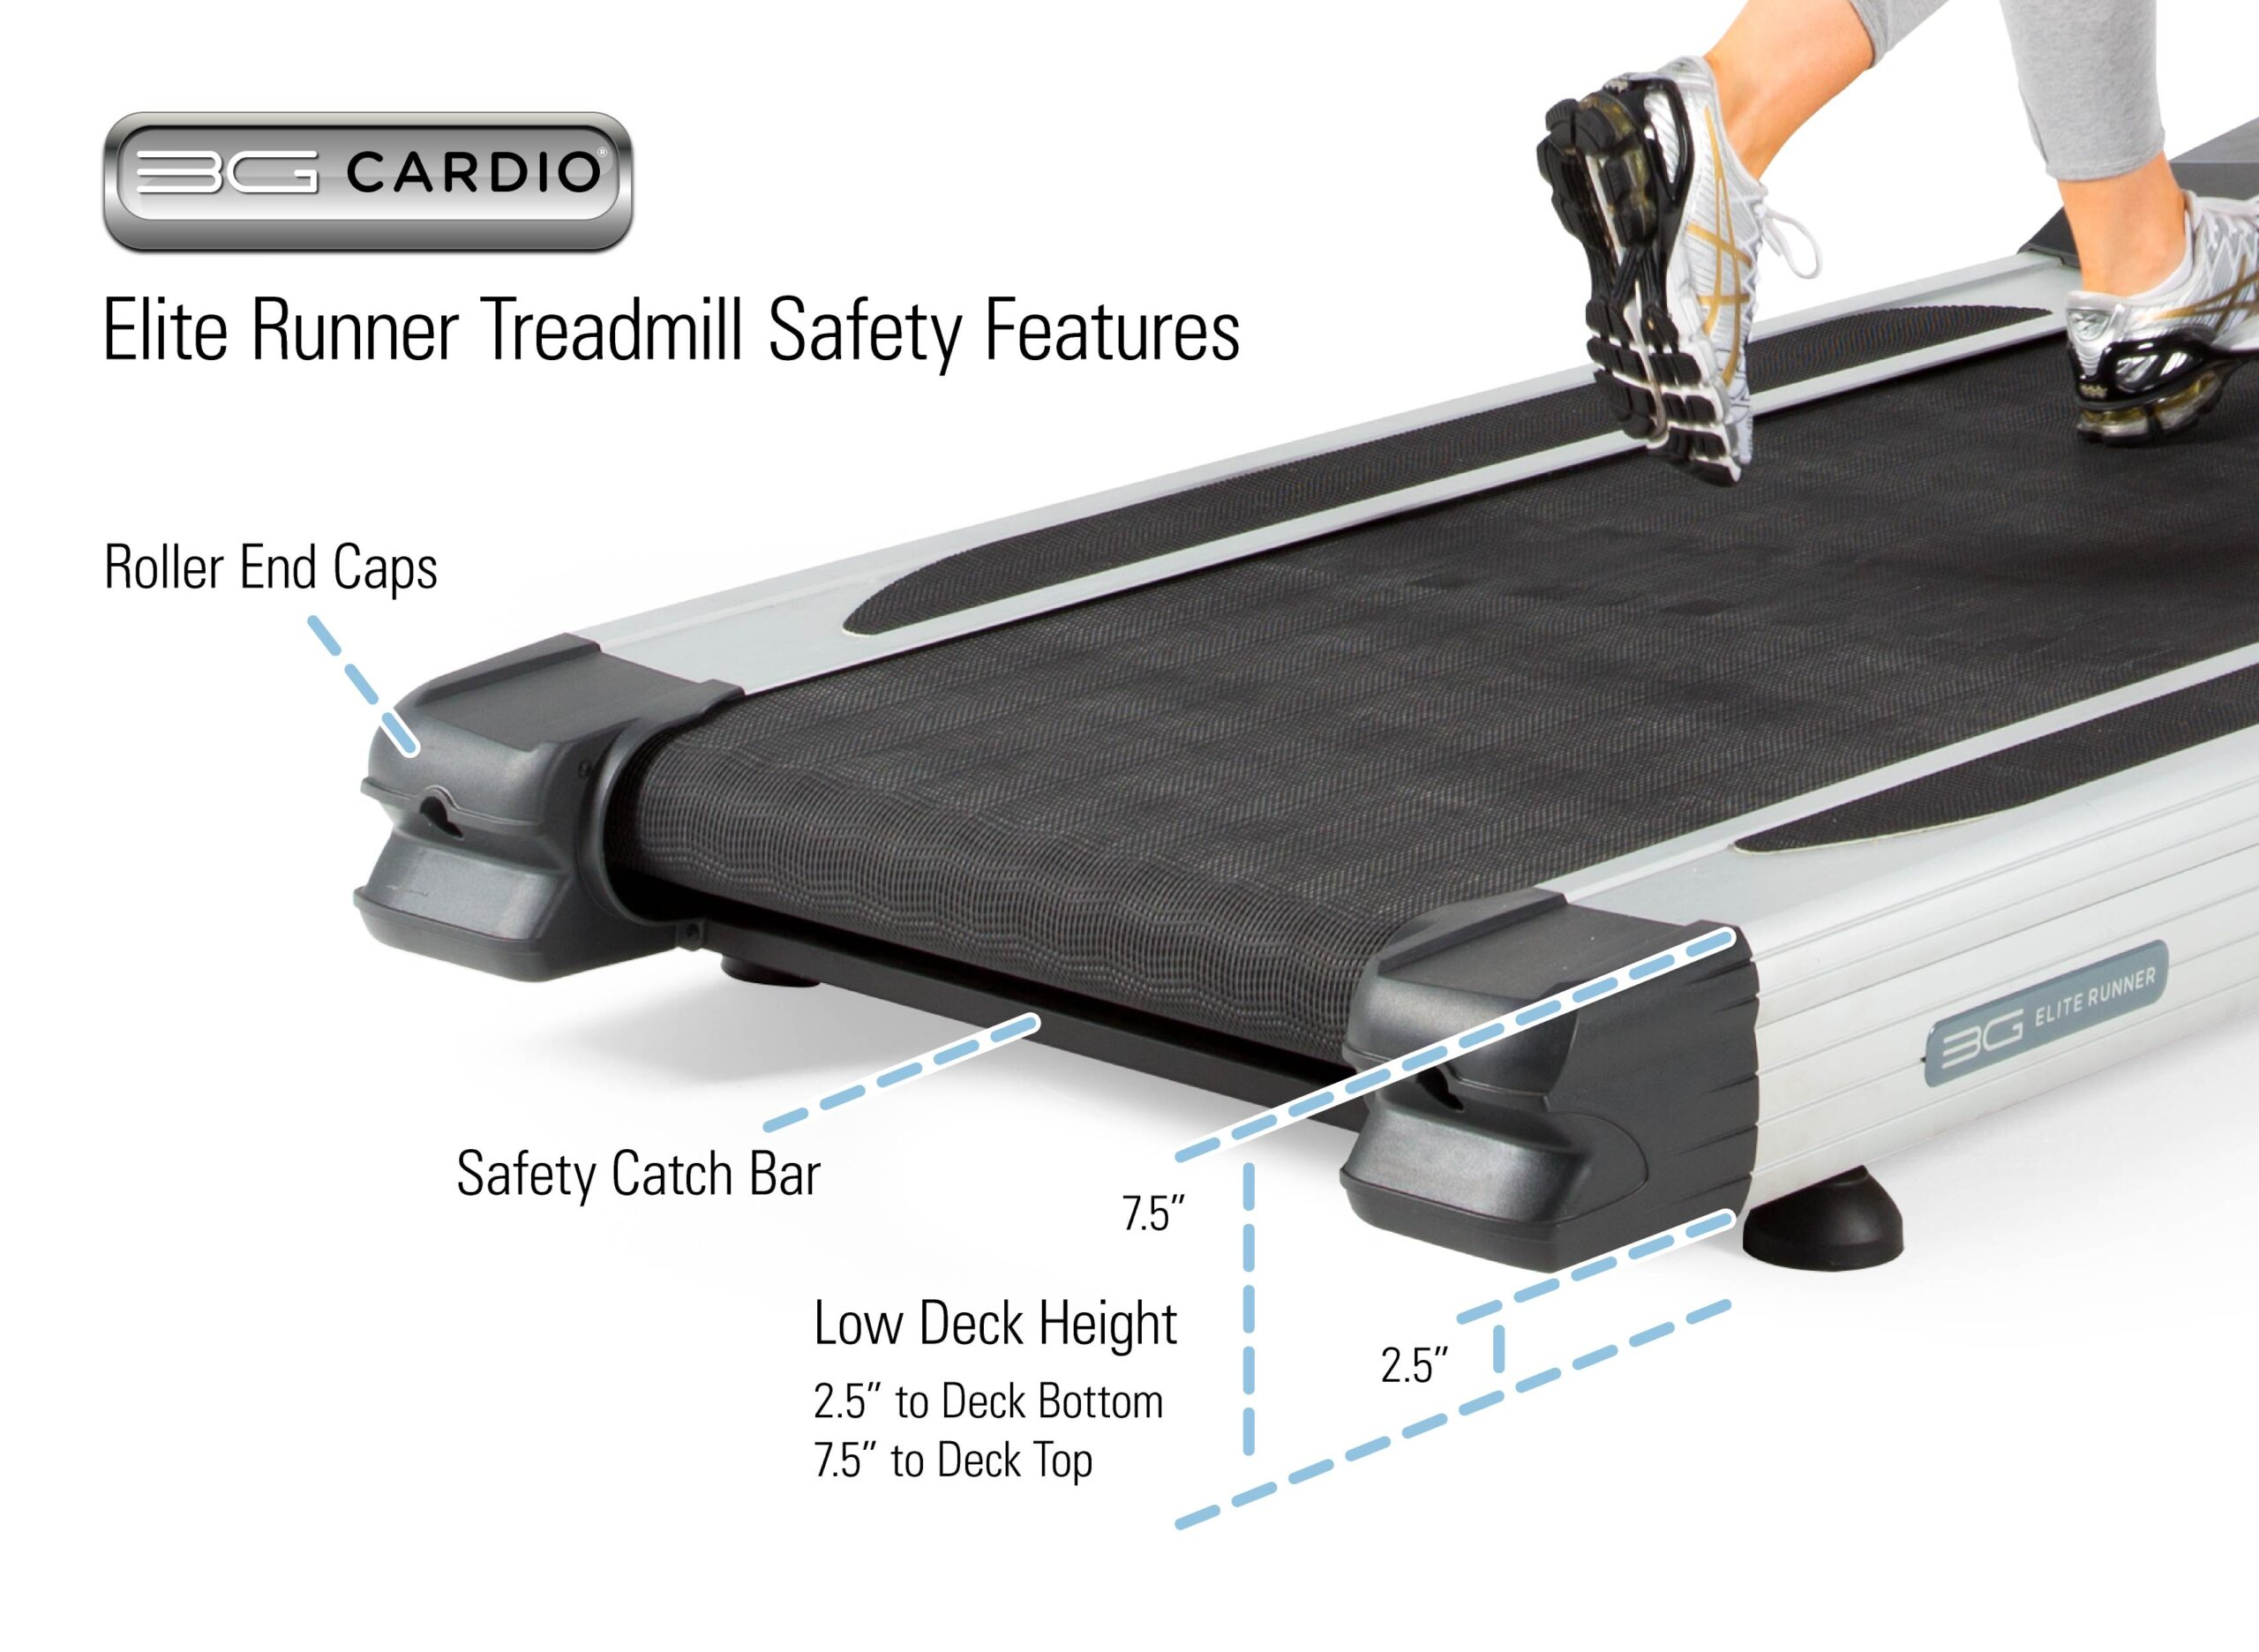 3G Cardio Elite Runner Treadmill Safety Features - Safety Catch Bar and Roller End Caps and Deck Height